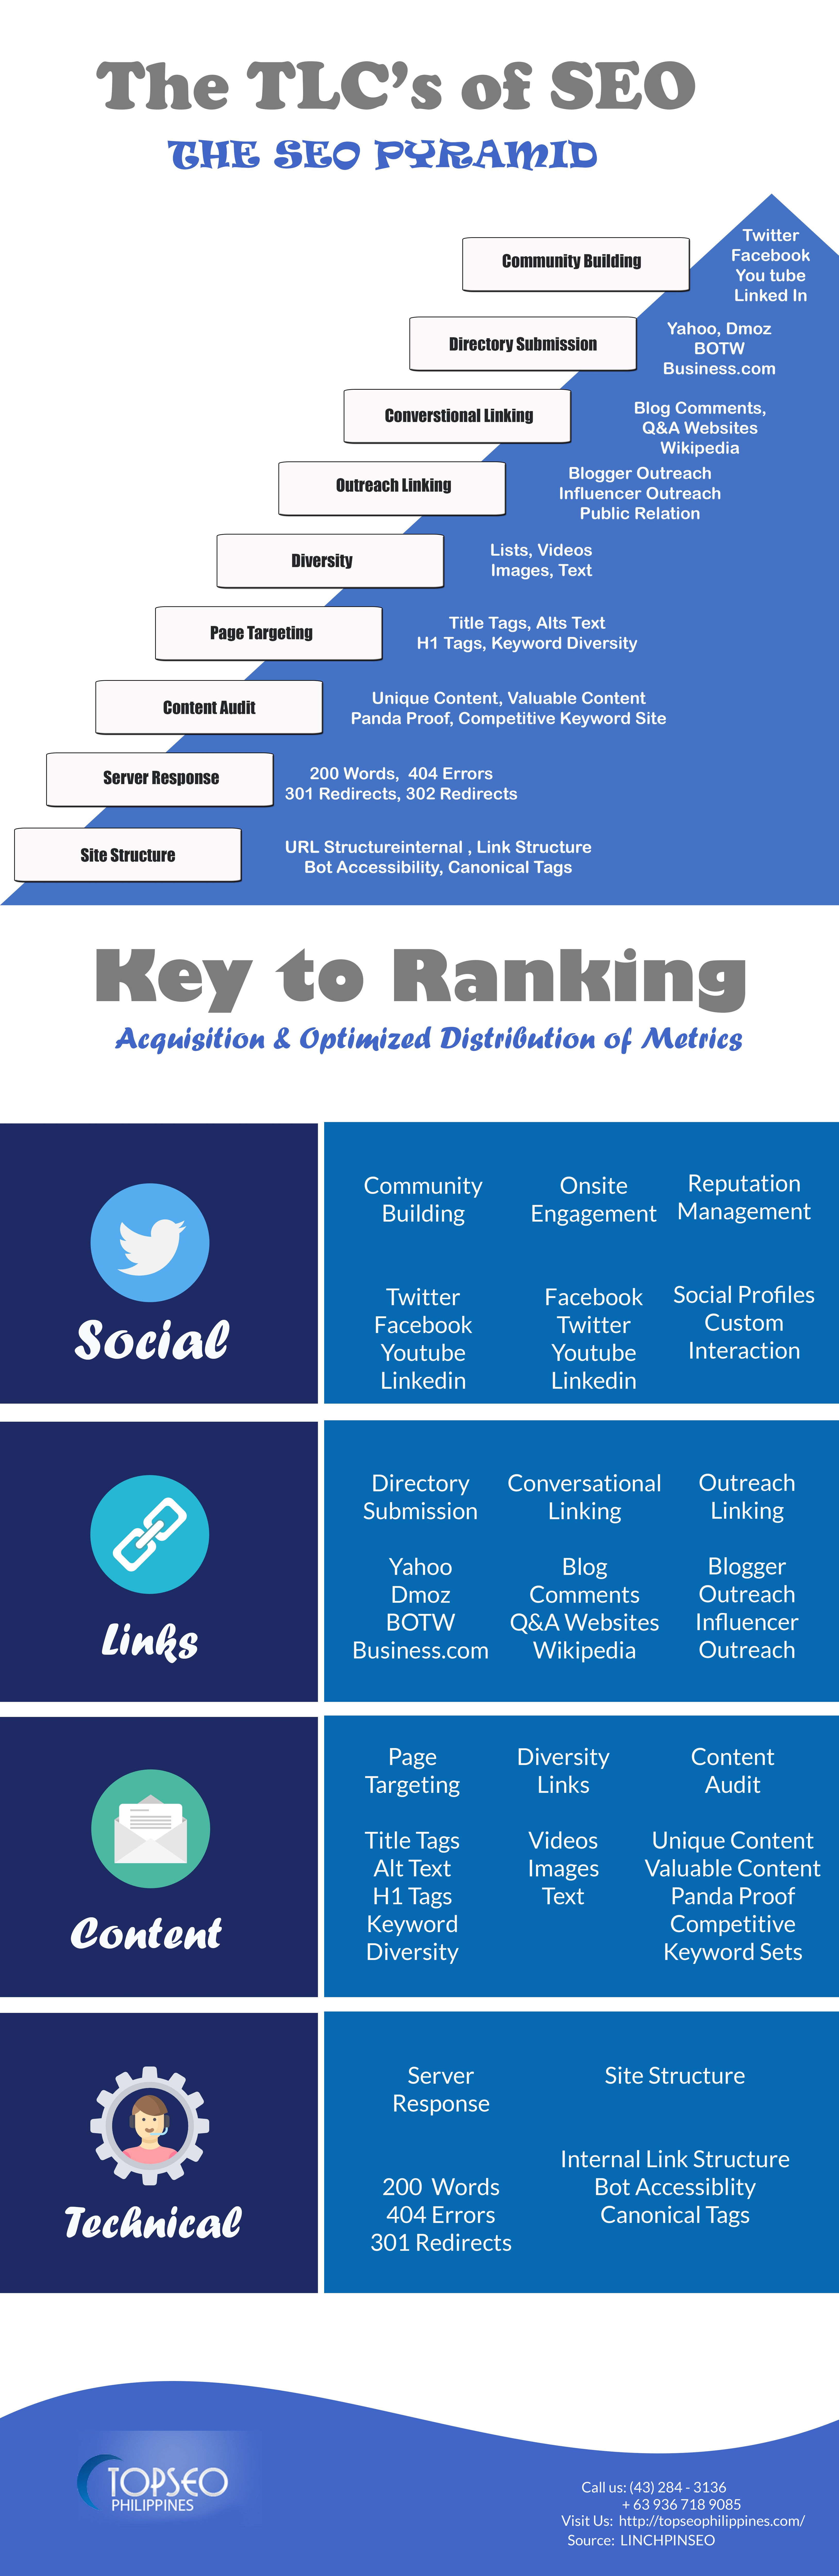 To And Fro Digital Marketing Solutions Efficient Online And Digital Solutions To Help Your O Digital Marketing Solutions Marketing Solution Digital Marketing